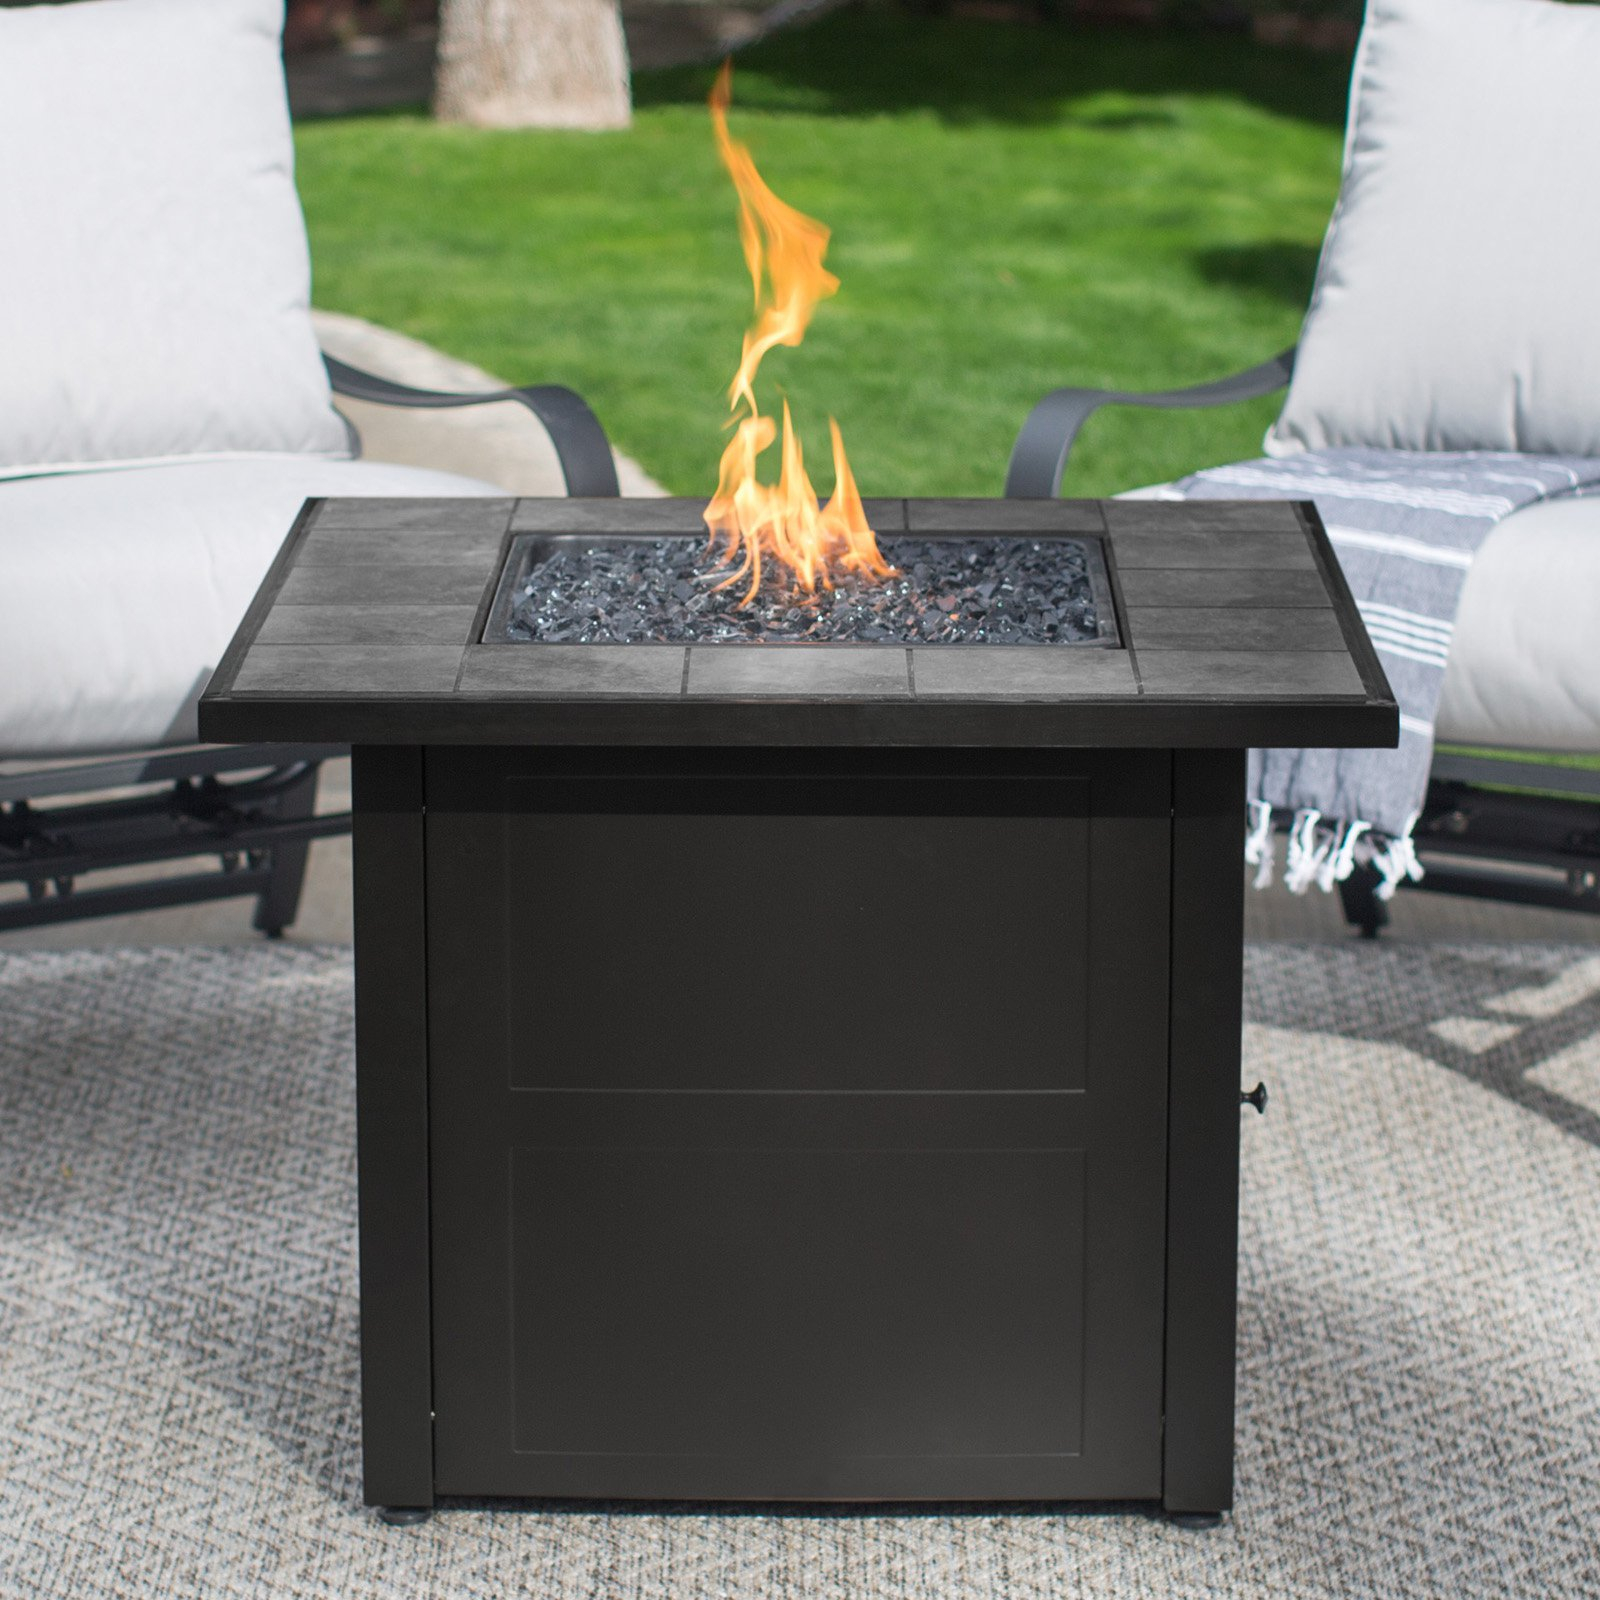 Endless Summer Lp Gas Outdoor Fire Pit Slate Tile Mantel Walmart throughout sizing 1600 X 1600